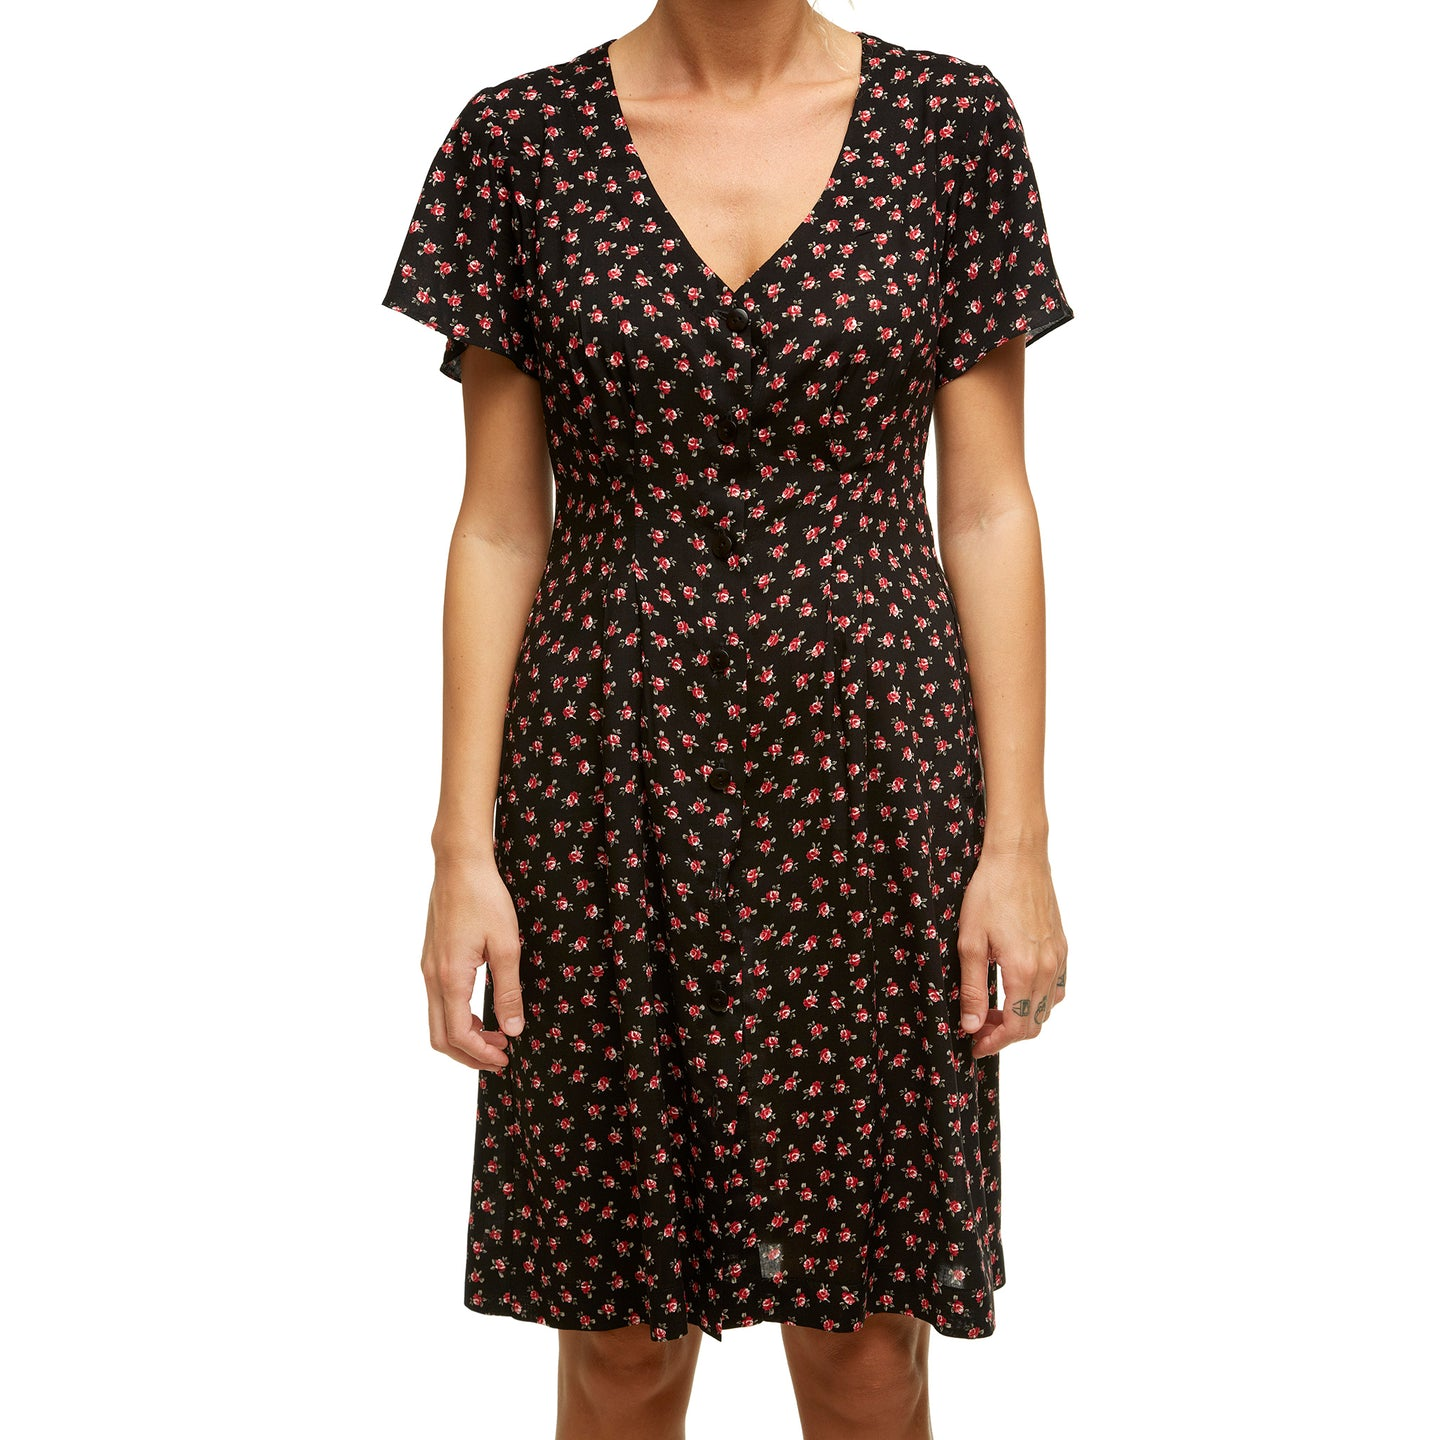 Black Floral Dress With Short Sleeves - krawaii.com